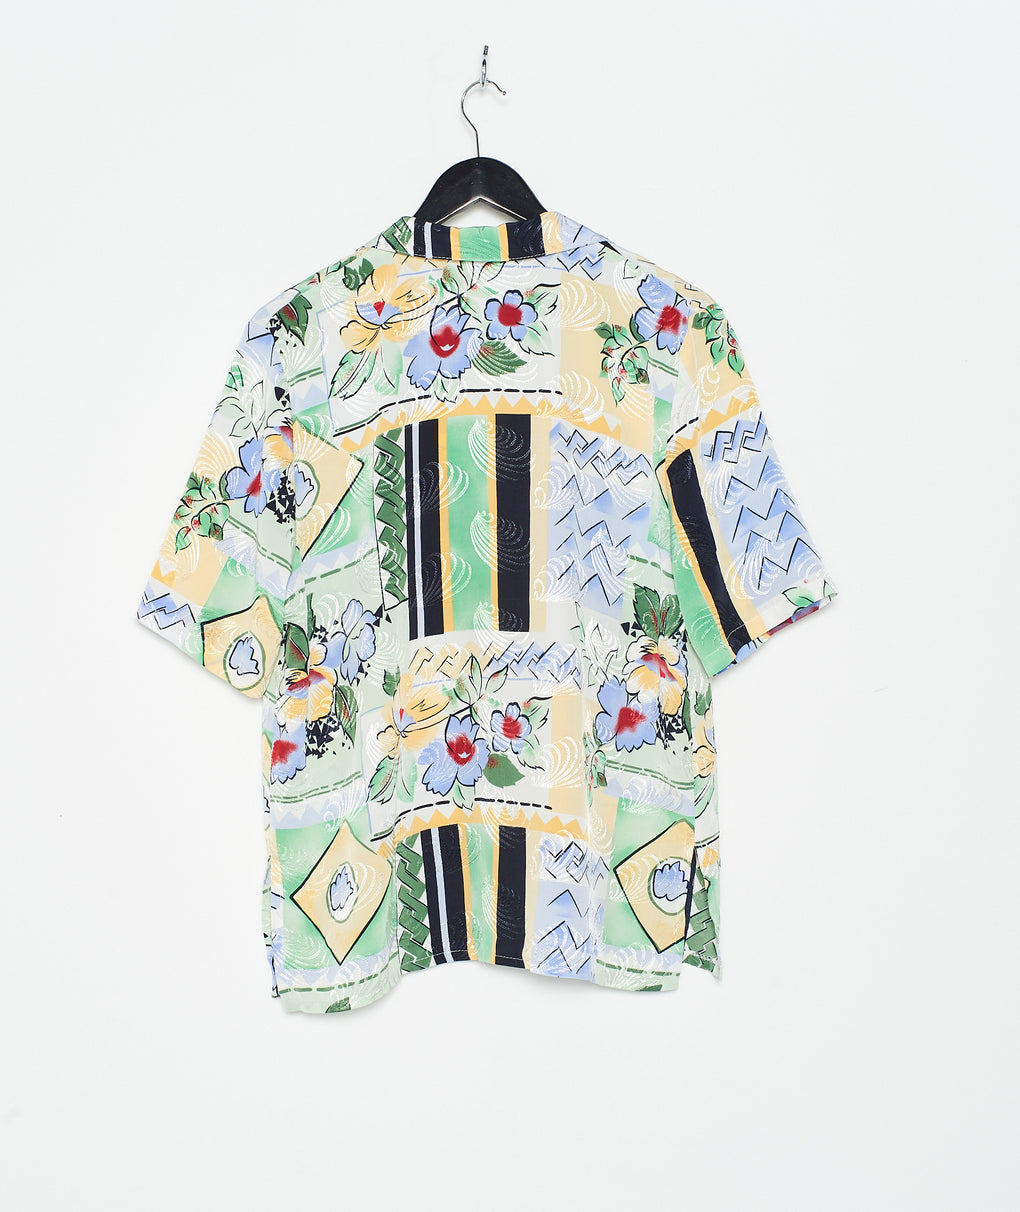 Bella S/S Shirt (XS)